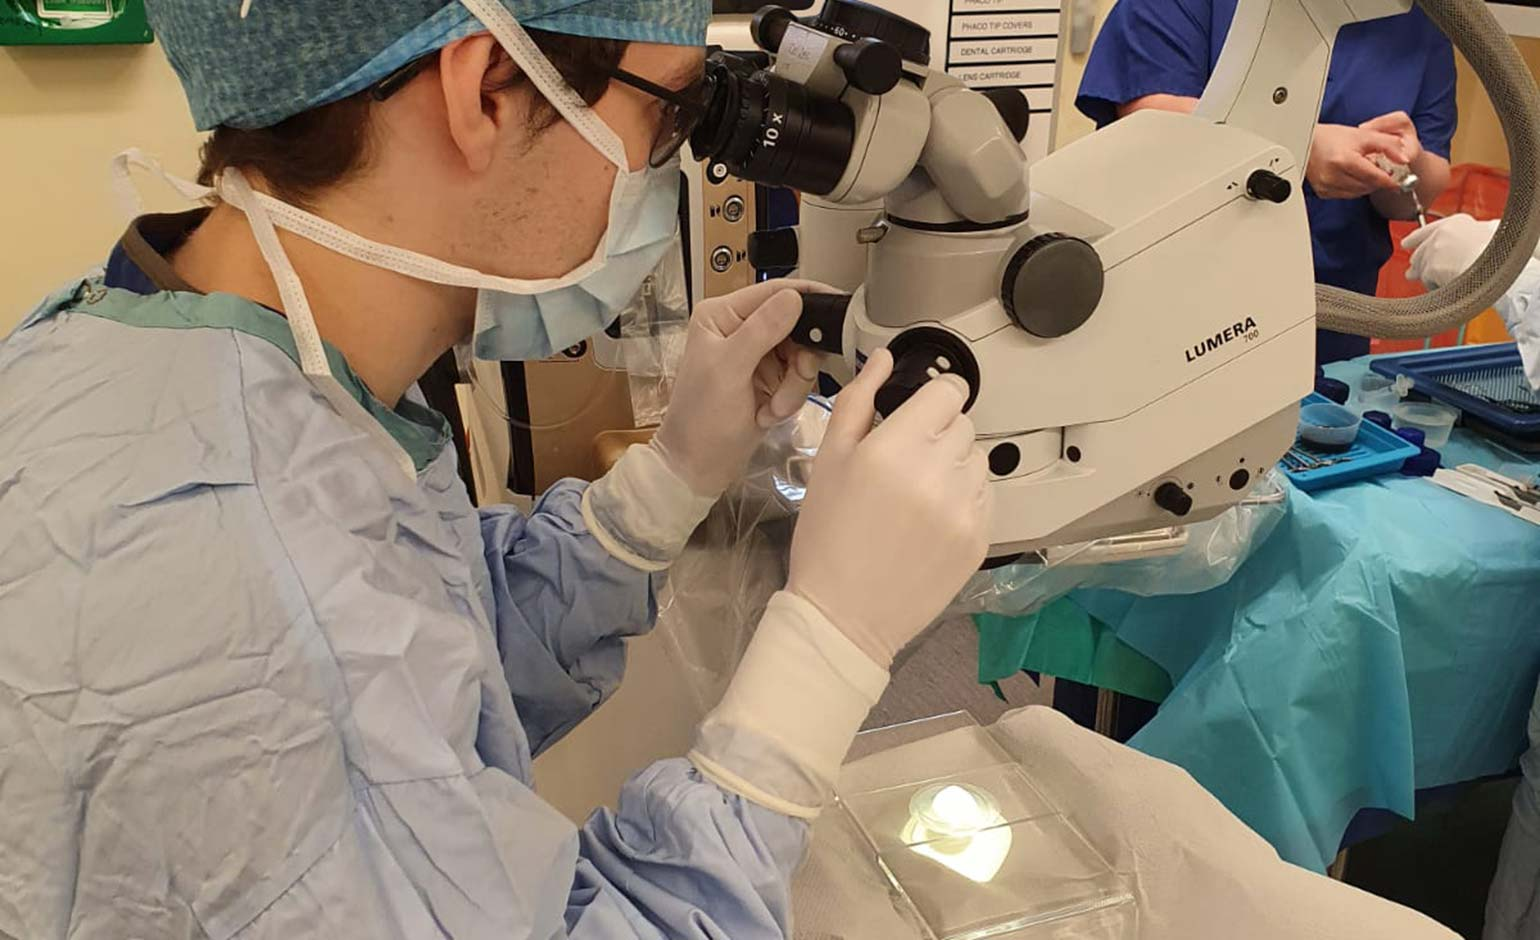 Eye surgery gets back underway at the RUH in Bath after trial operating day